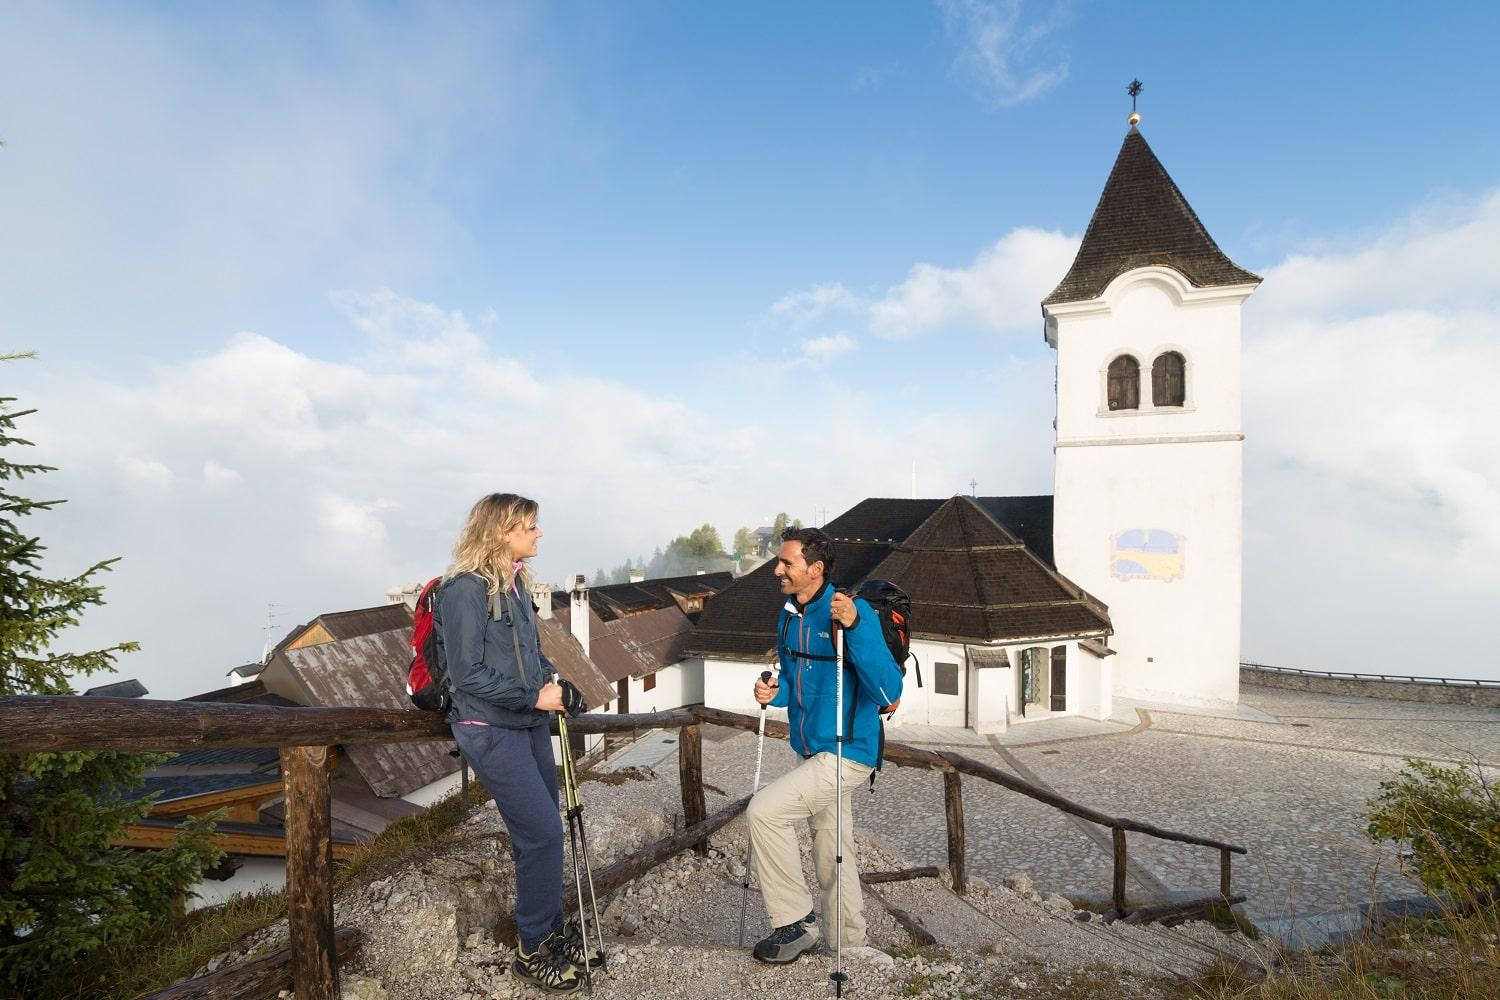 Alpe Adria Historical Trail Walking Tour